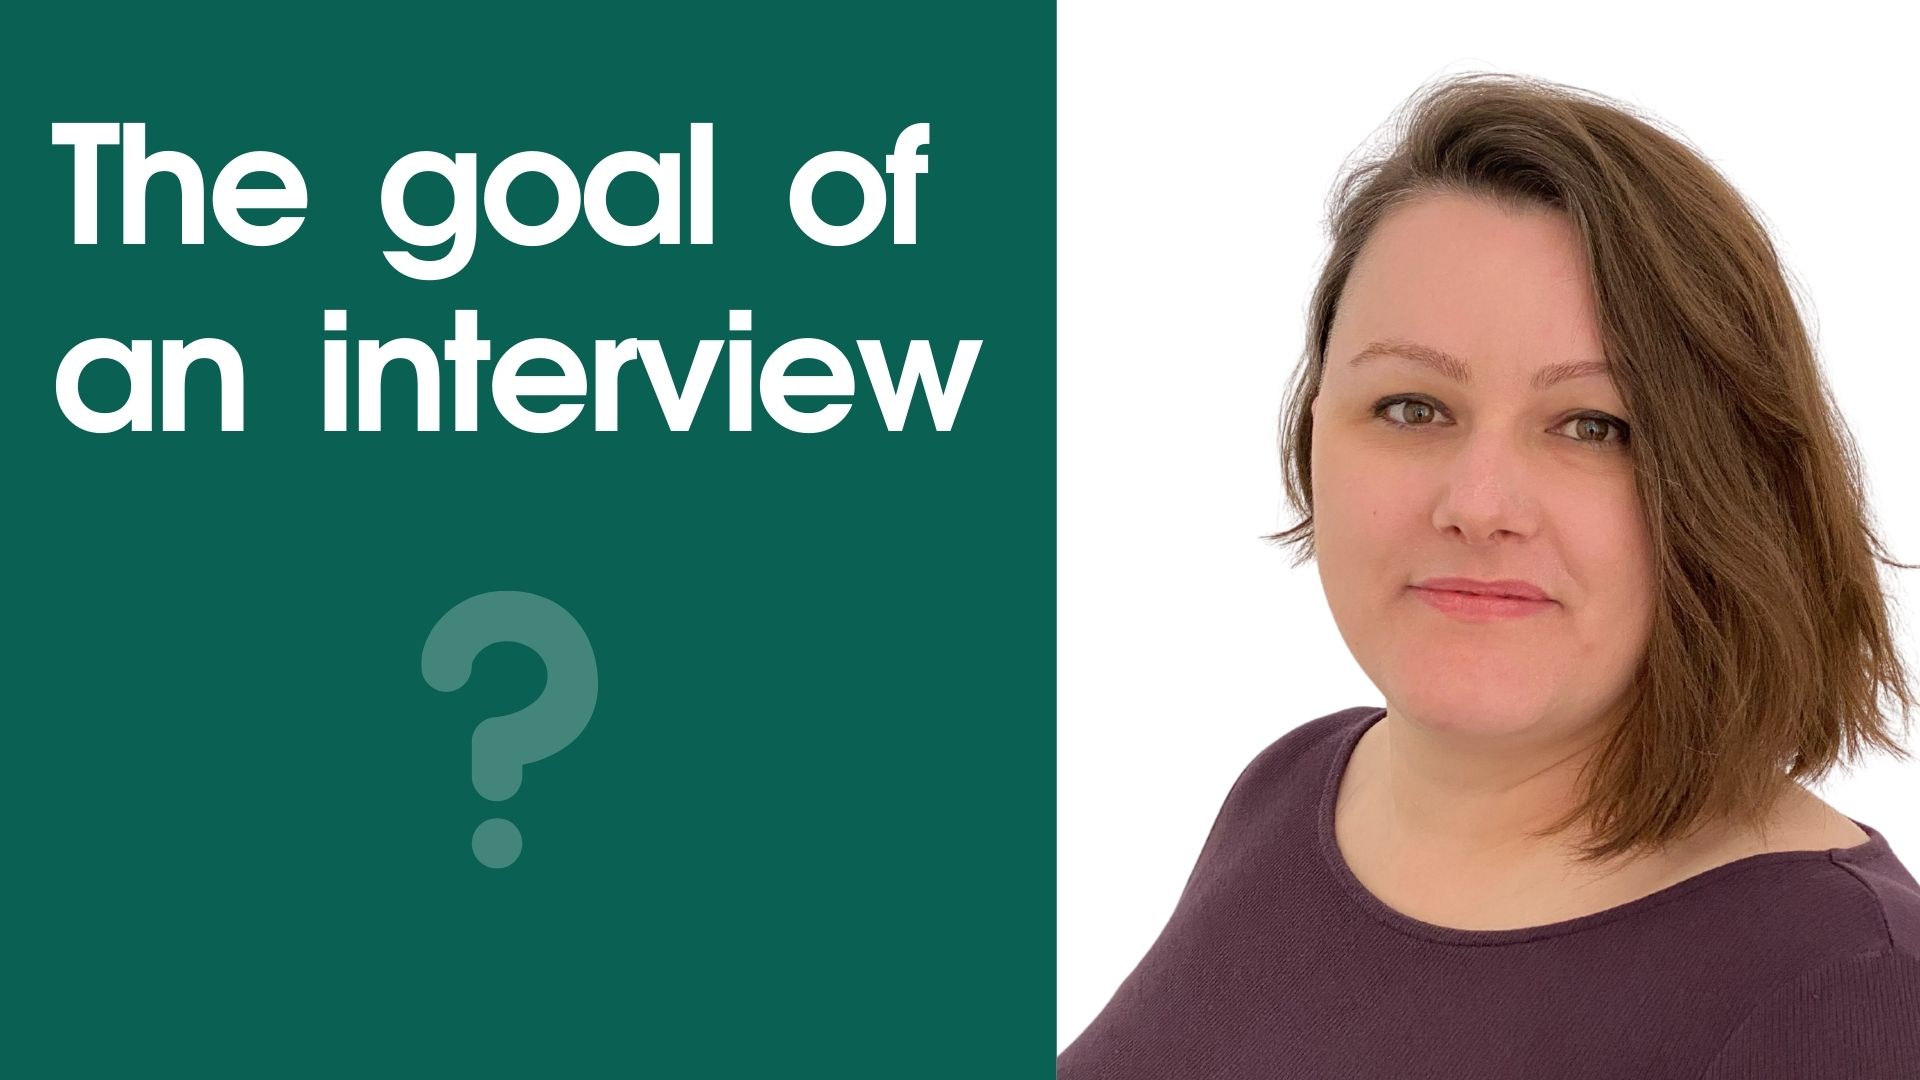 What is the goal of an interview?